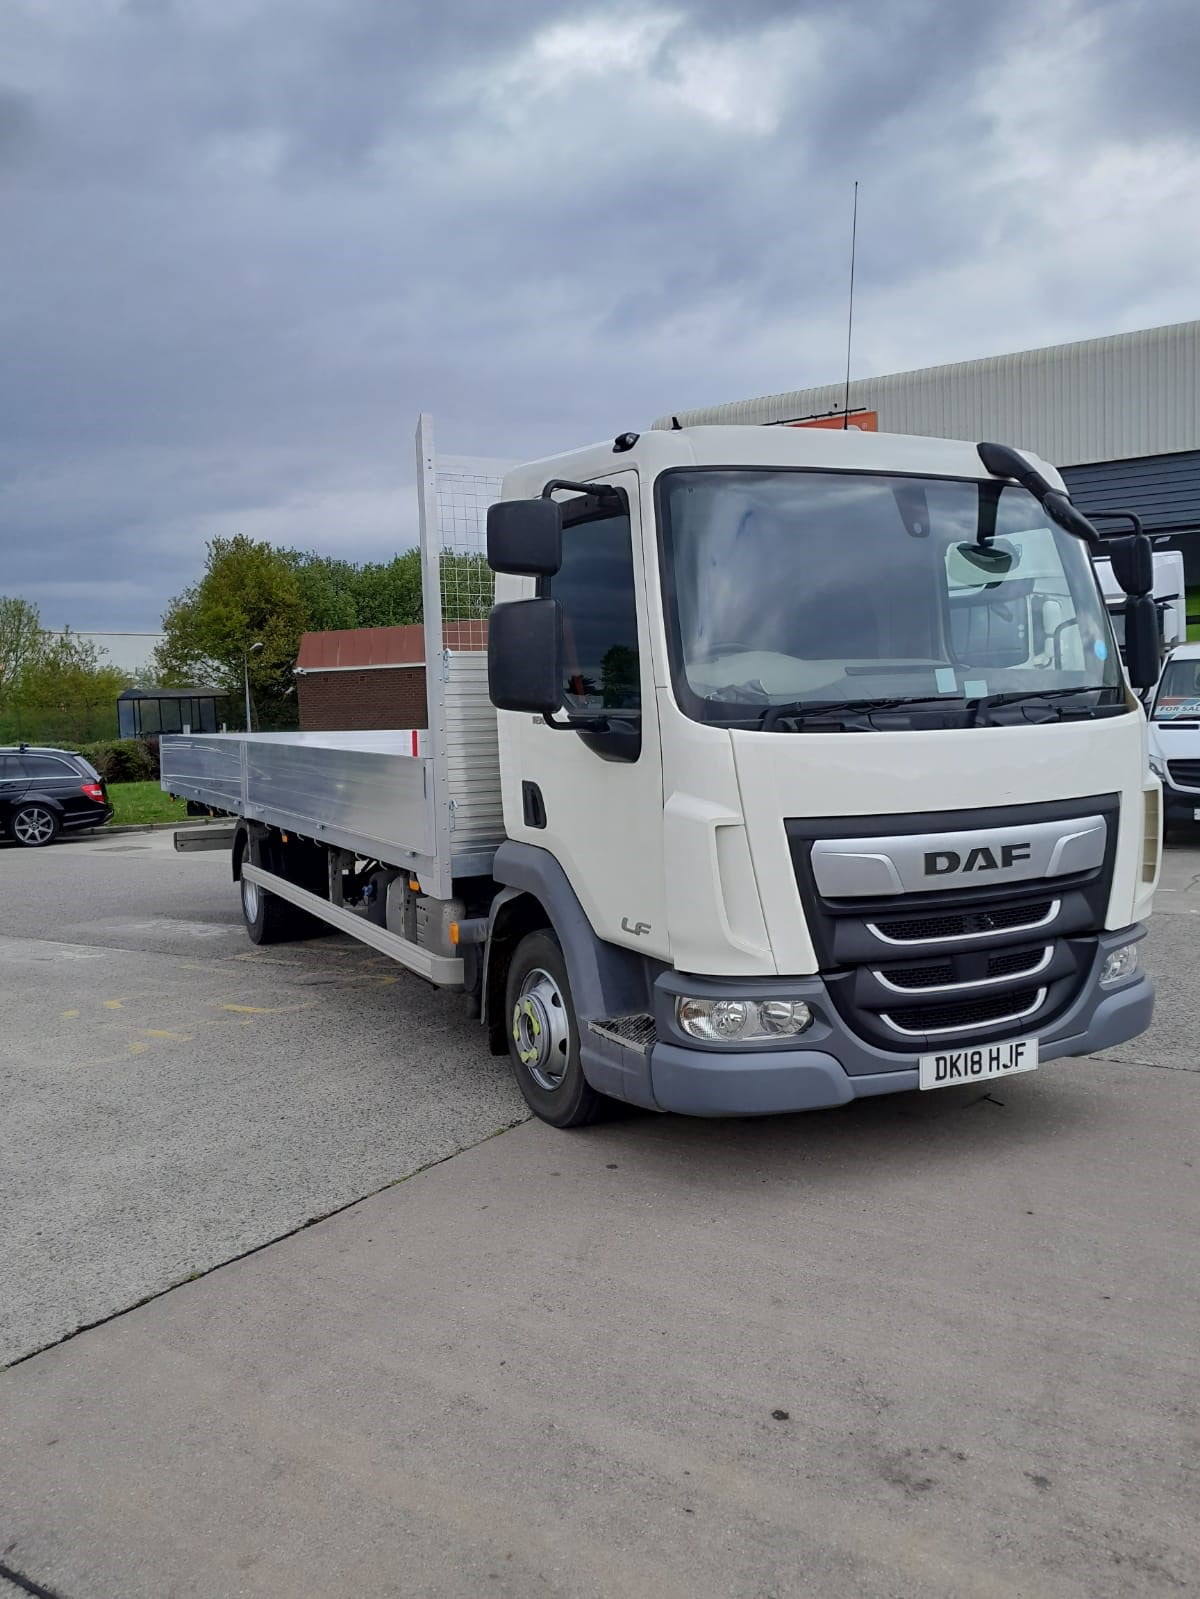 2018 DAF LF, 7.5 Tonne, Euro 6, 180bhp, Automatic Gearbox, 24ft Dropside Body, Day Cab, Steering Wheel Controls, Low Mileage, Choice Available, Warranty & Finance options also available.